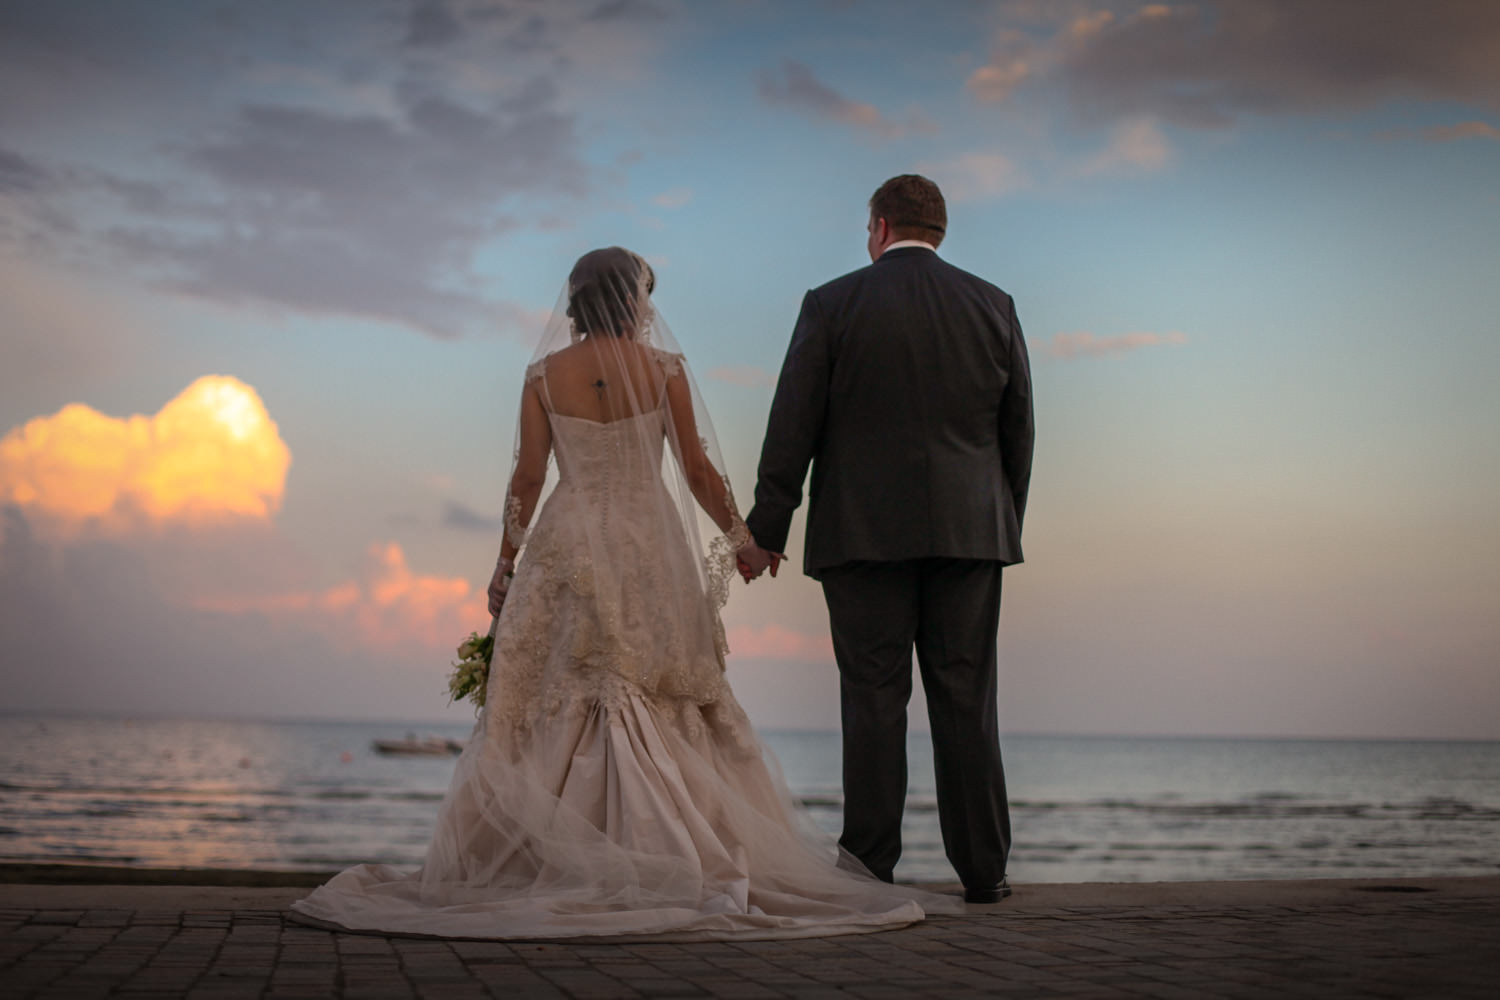 Bride and groom sunset photo Larnaca beach Cyprus